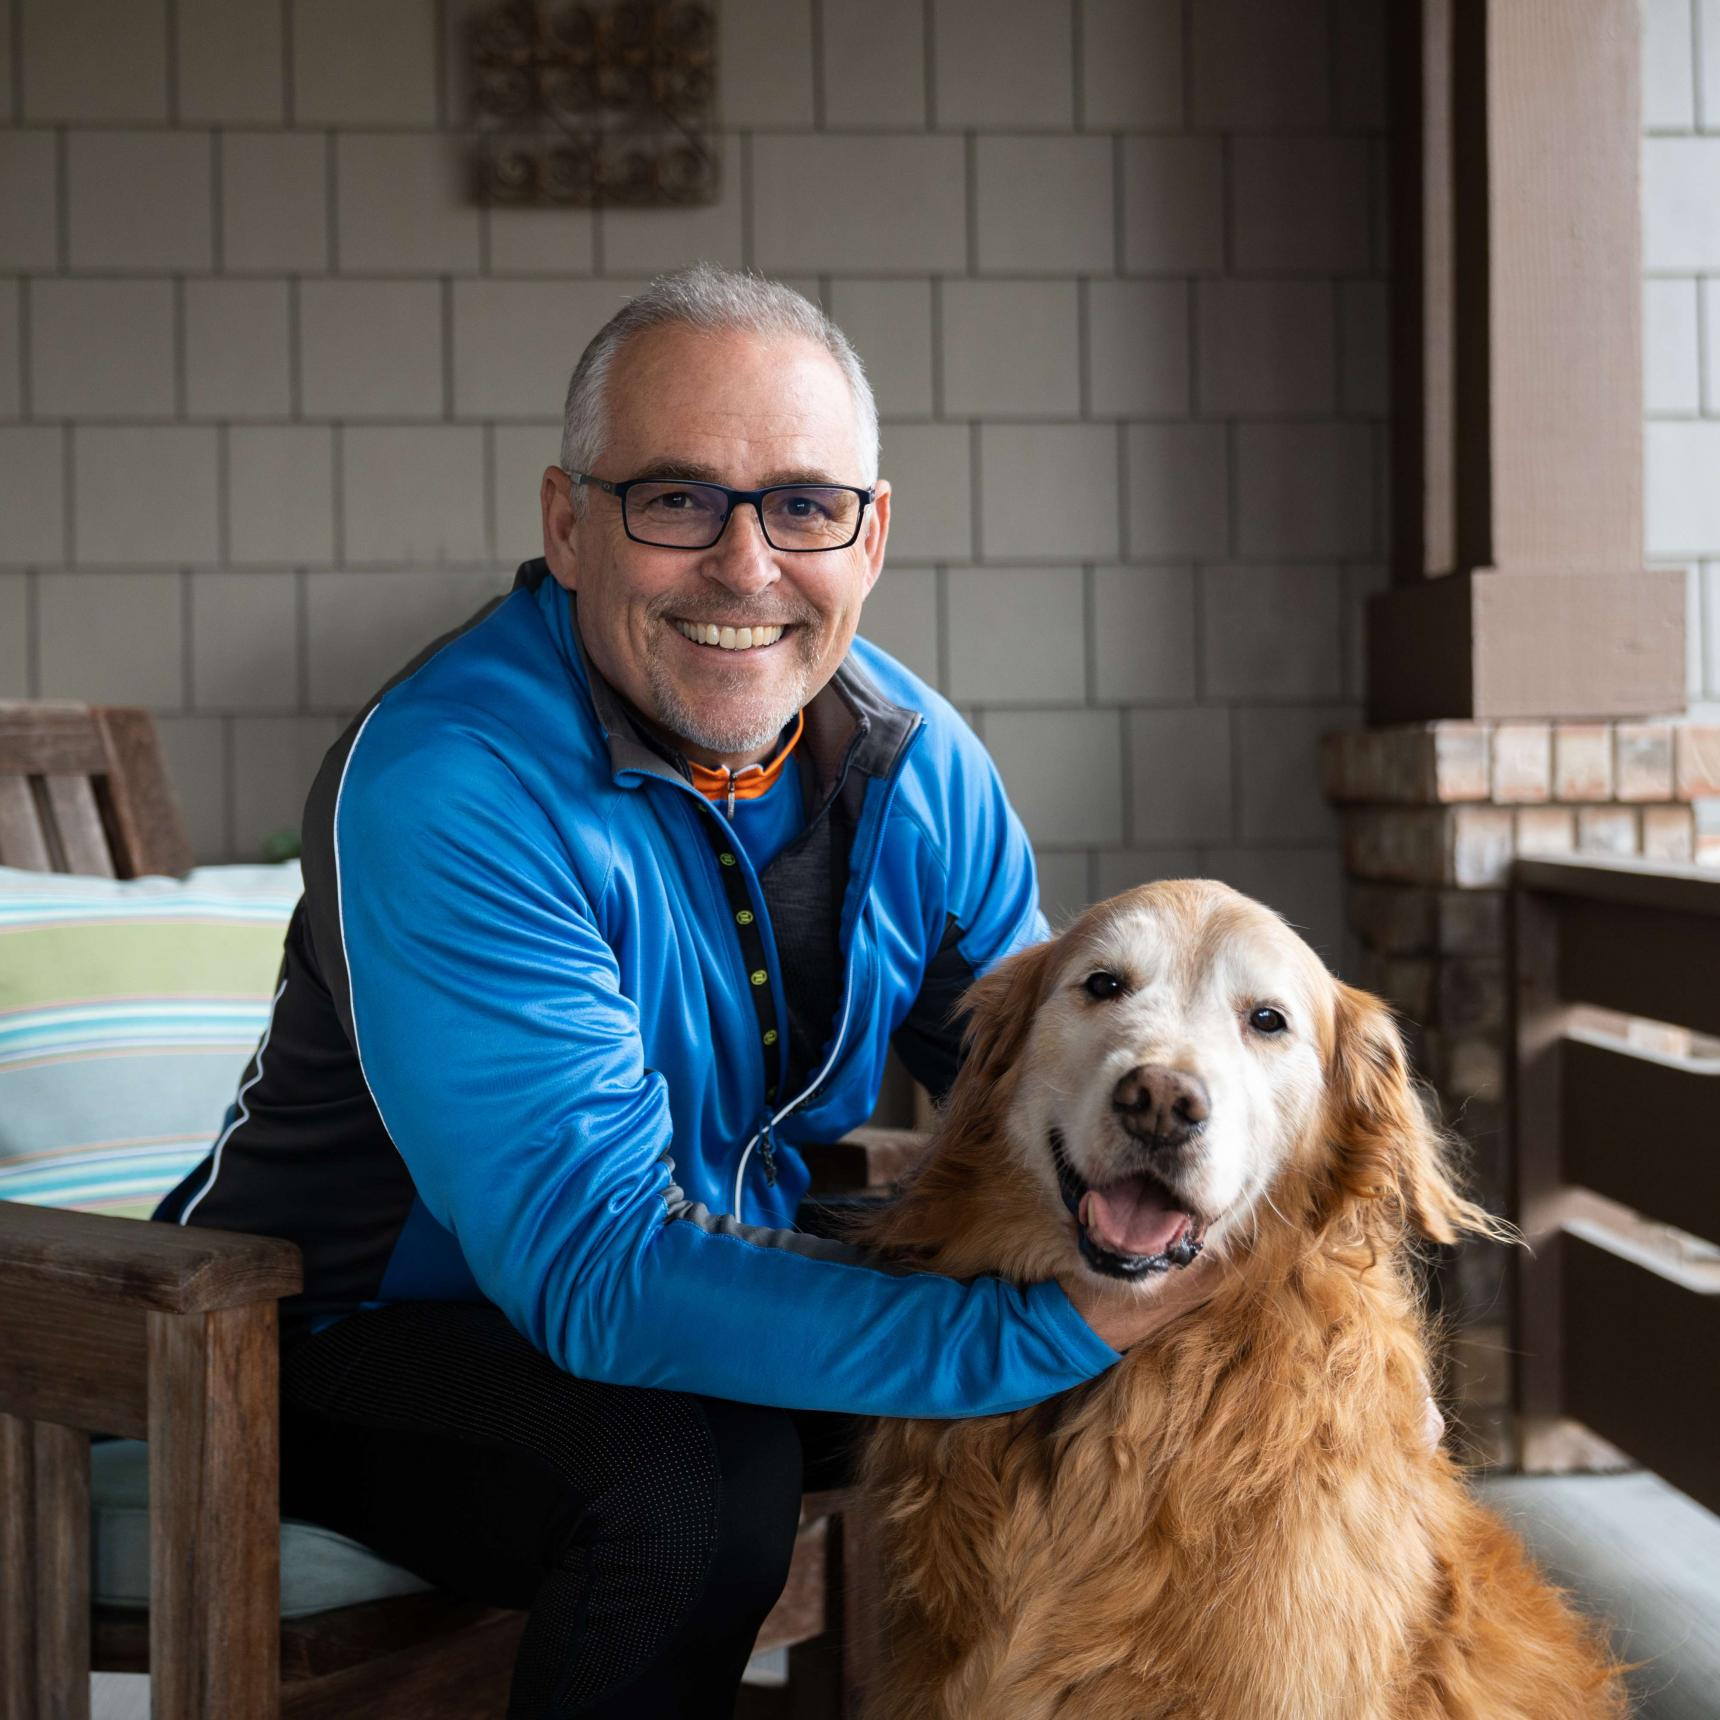 Cancer survivor and Conquer Cancer fundraiser Mark Crafts pictured with his dog